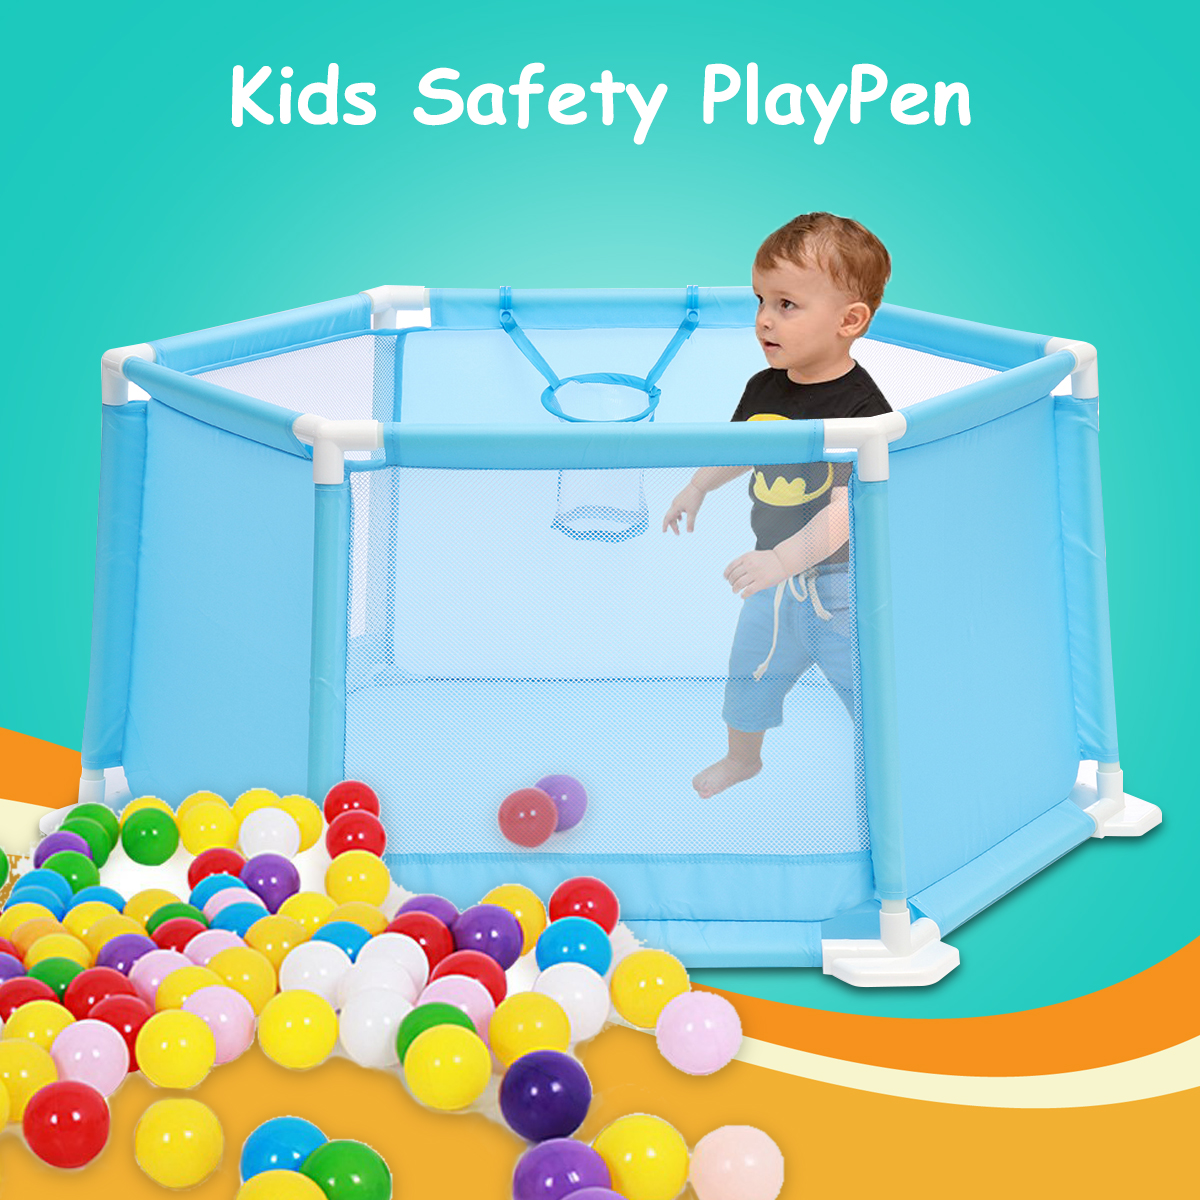 Baby Playpen Kids 6 Panel Safety Protection Play Center Yard Fence+50Pcs Balls 110x49x51cm Integrated Rubberised Feet Convenient ship from germany 8 panel pet dog cat exercise pen playpen fence yard kennel portable 24 30 36